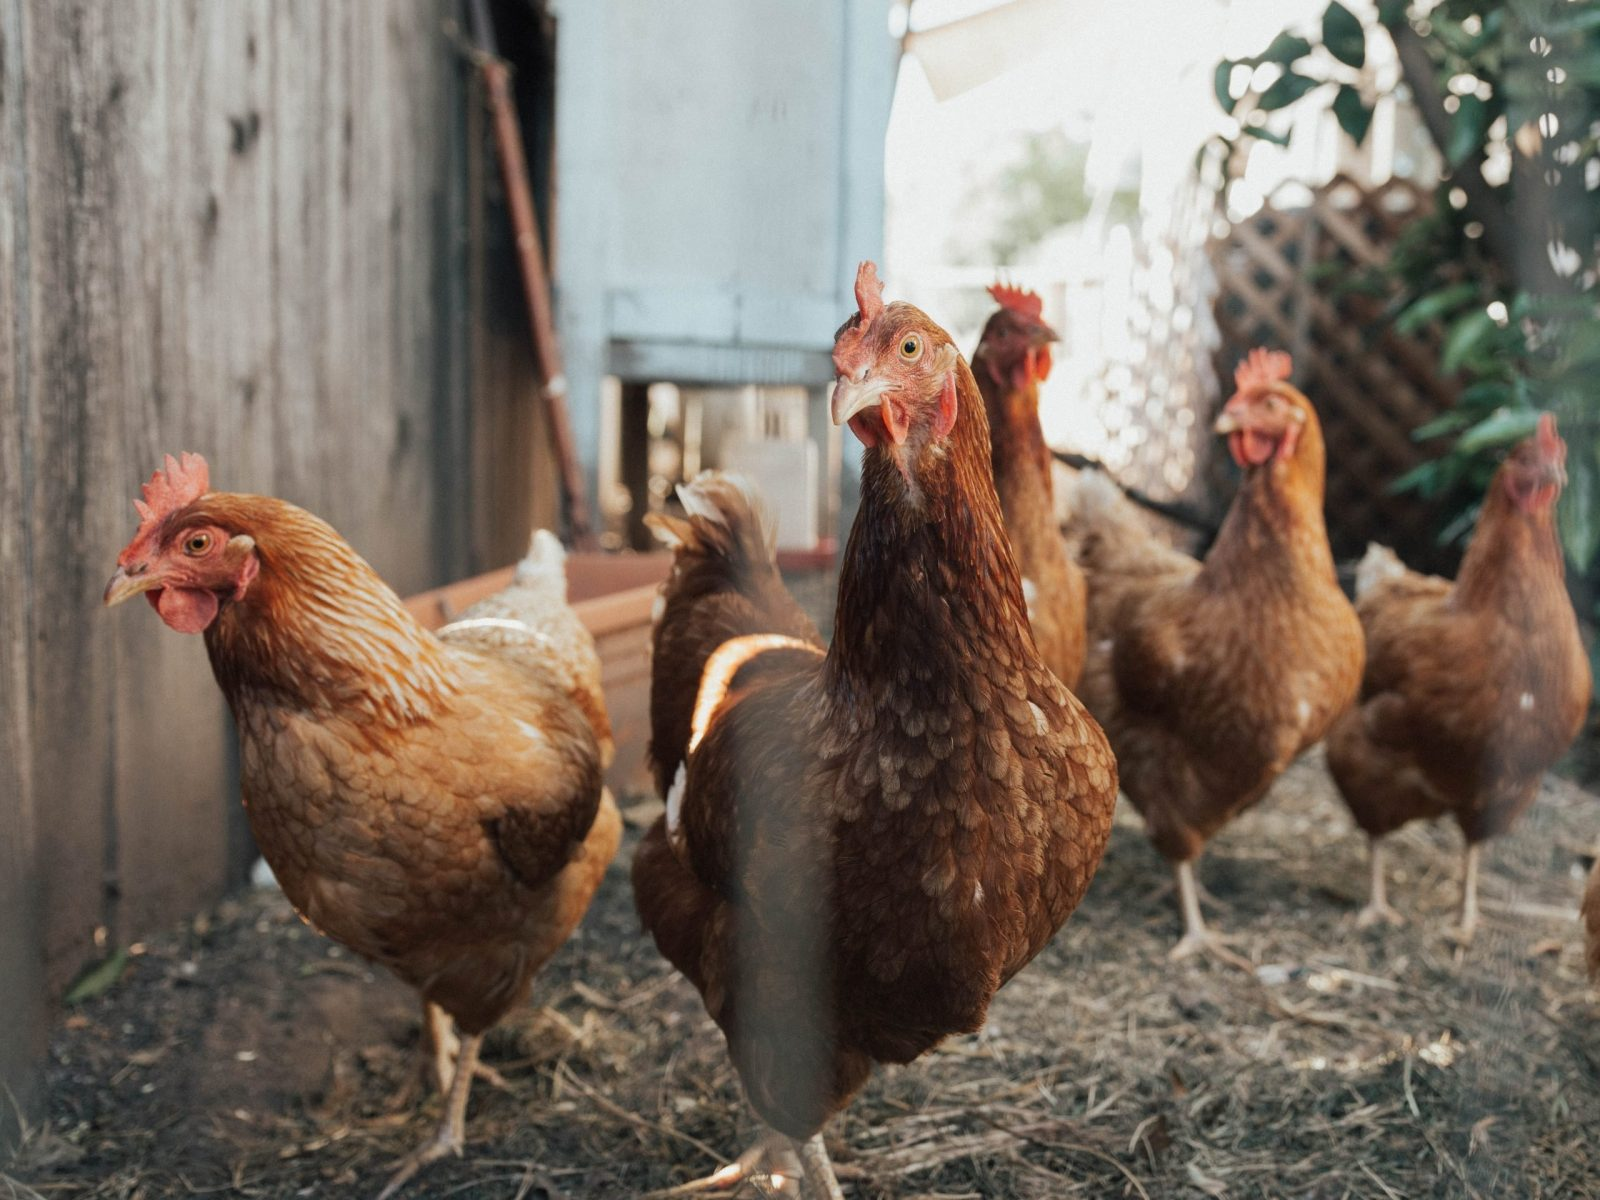 Chicken manure is the best fertilizer